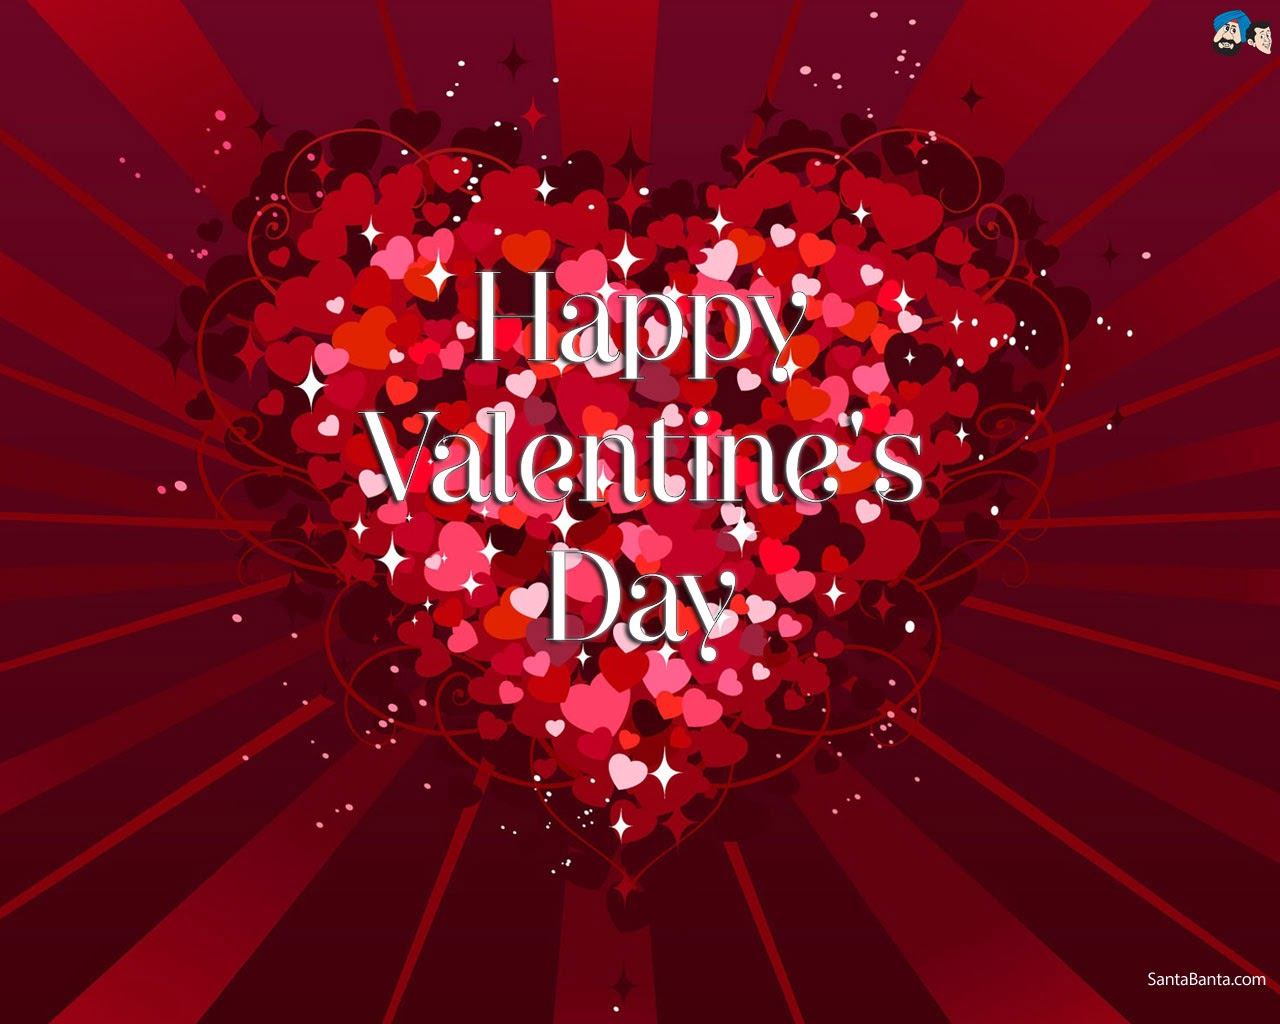 High quality wallpapers valentine s day valentineblog net